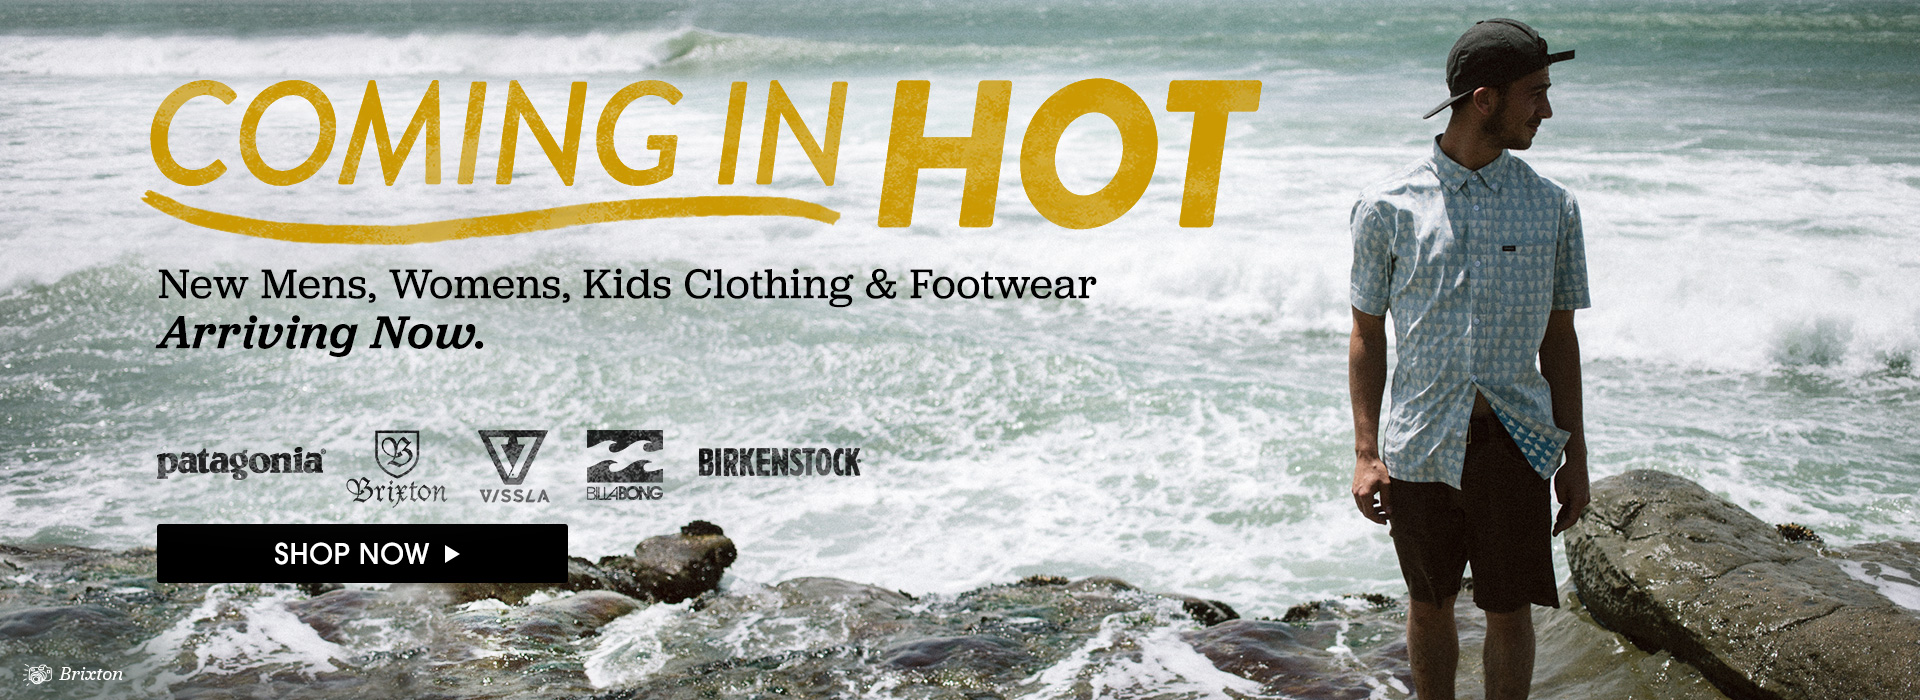 Coming In Hot. New Mens, Womens, Kids Clothing and Footwear Arriving Now.